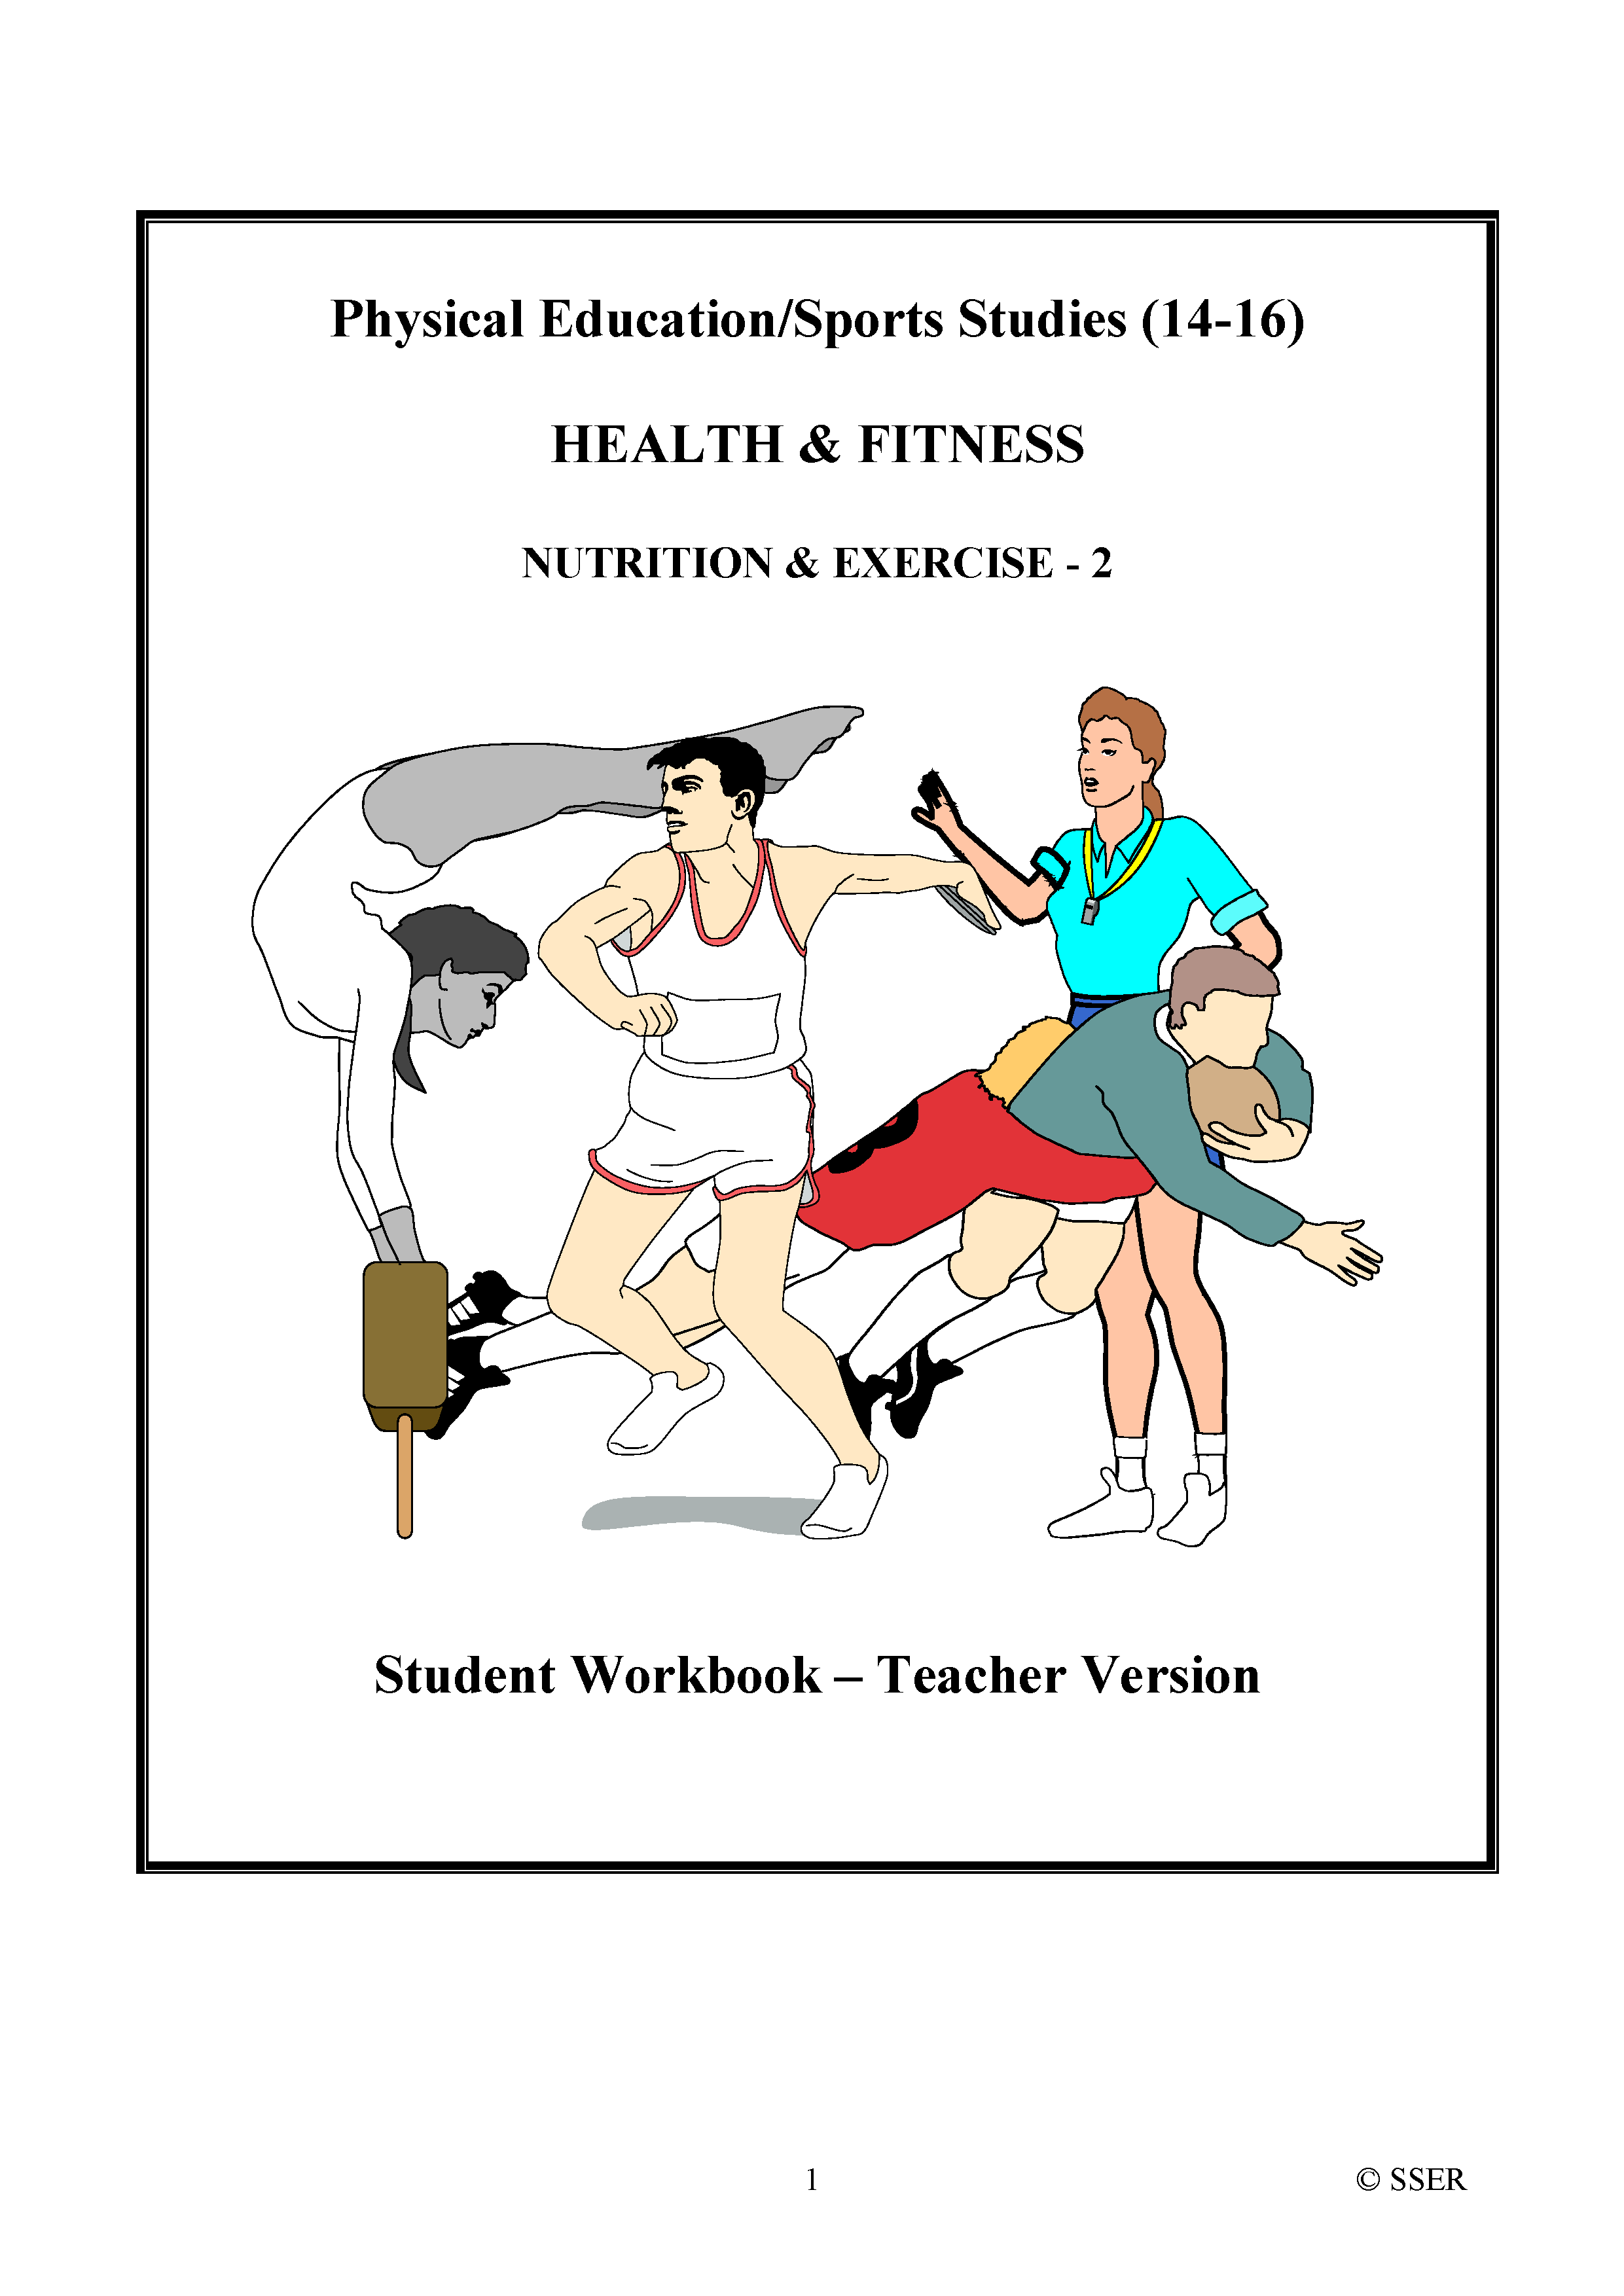 PE703ST - Nutrition & Exercise - 2 (Energy Balance & Special Diets) WS